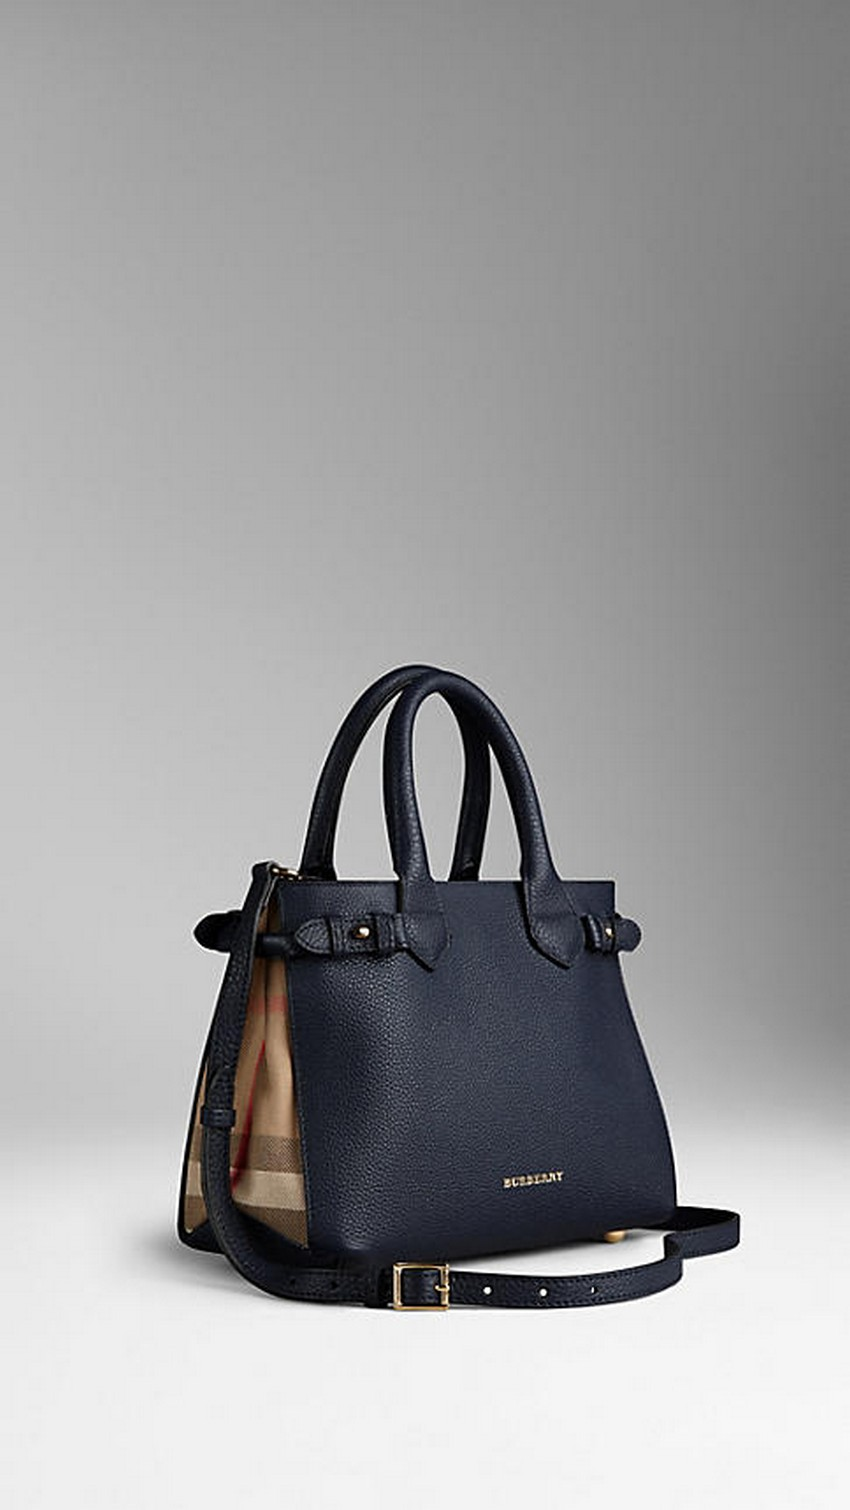 The Banner Bag from Burberry Sells For More Than $2,000 | Image Source: sg.burberry.com